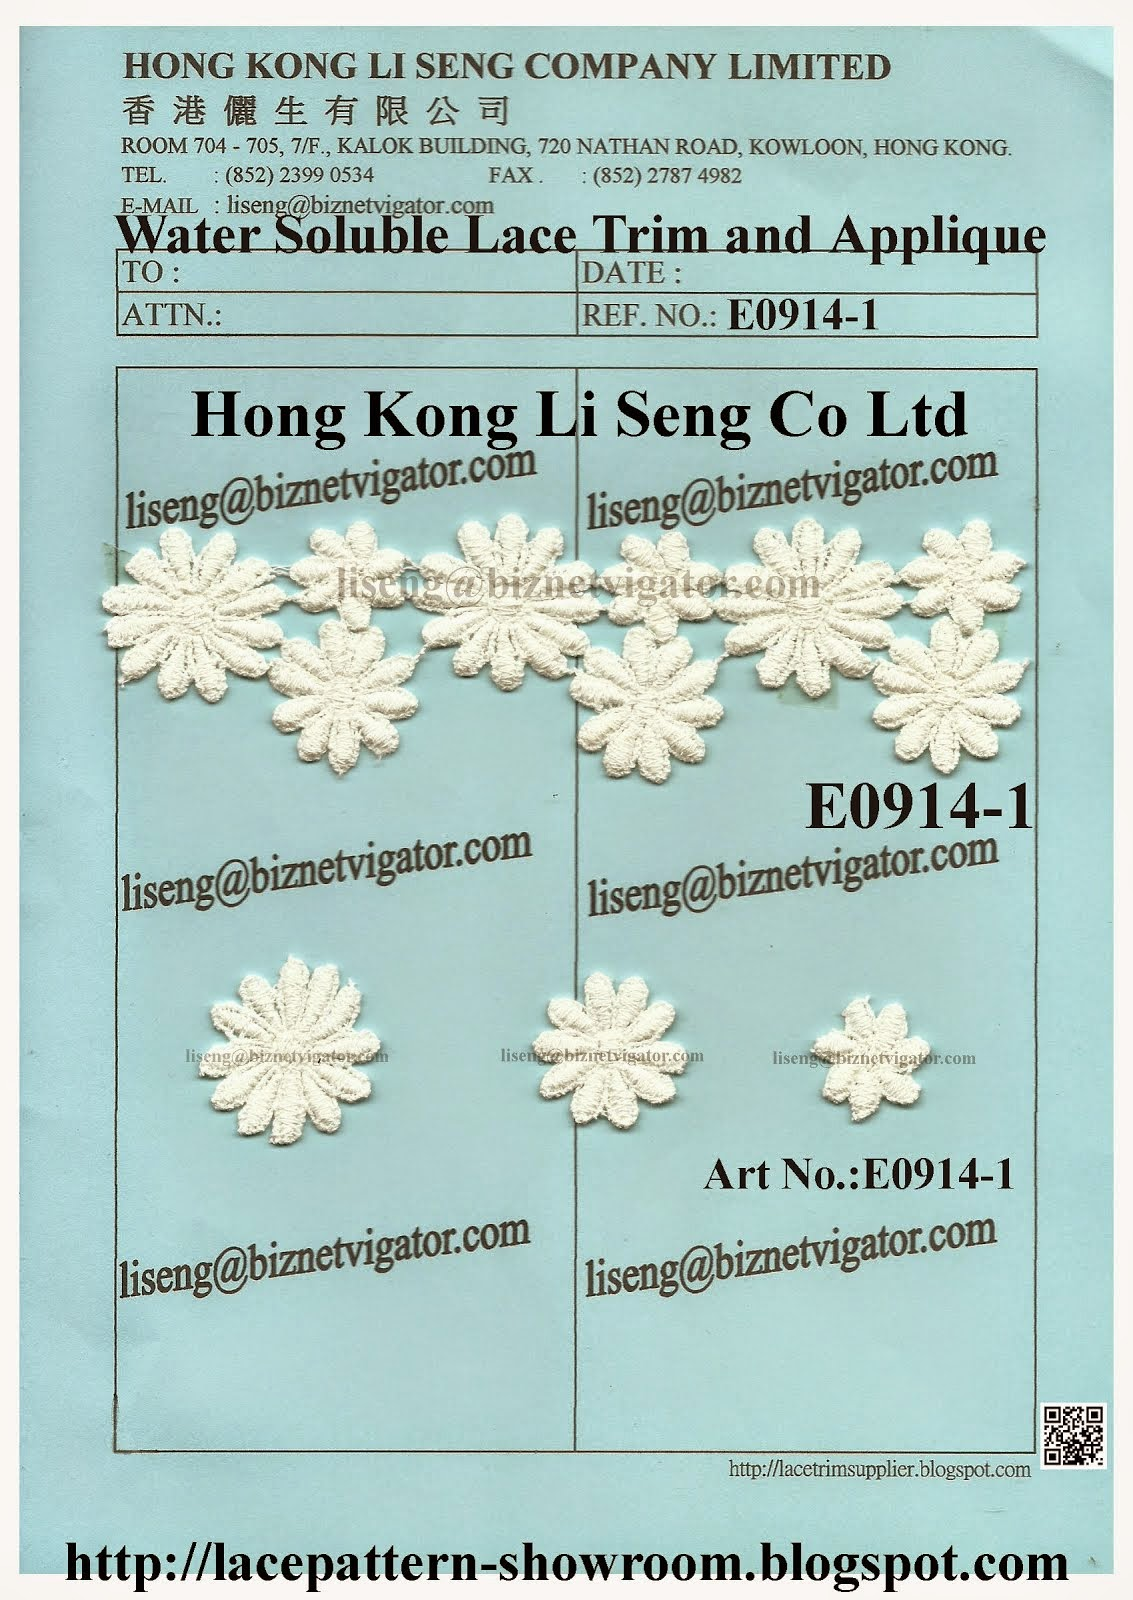 Lace Trim and Lace Applique Manufacturer Wholesaler Supplier - Hong Kong Li Seng Co Ltd